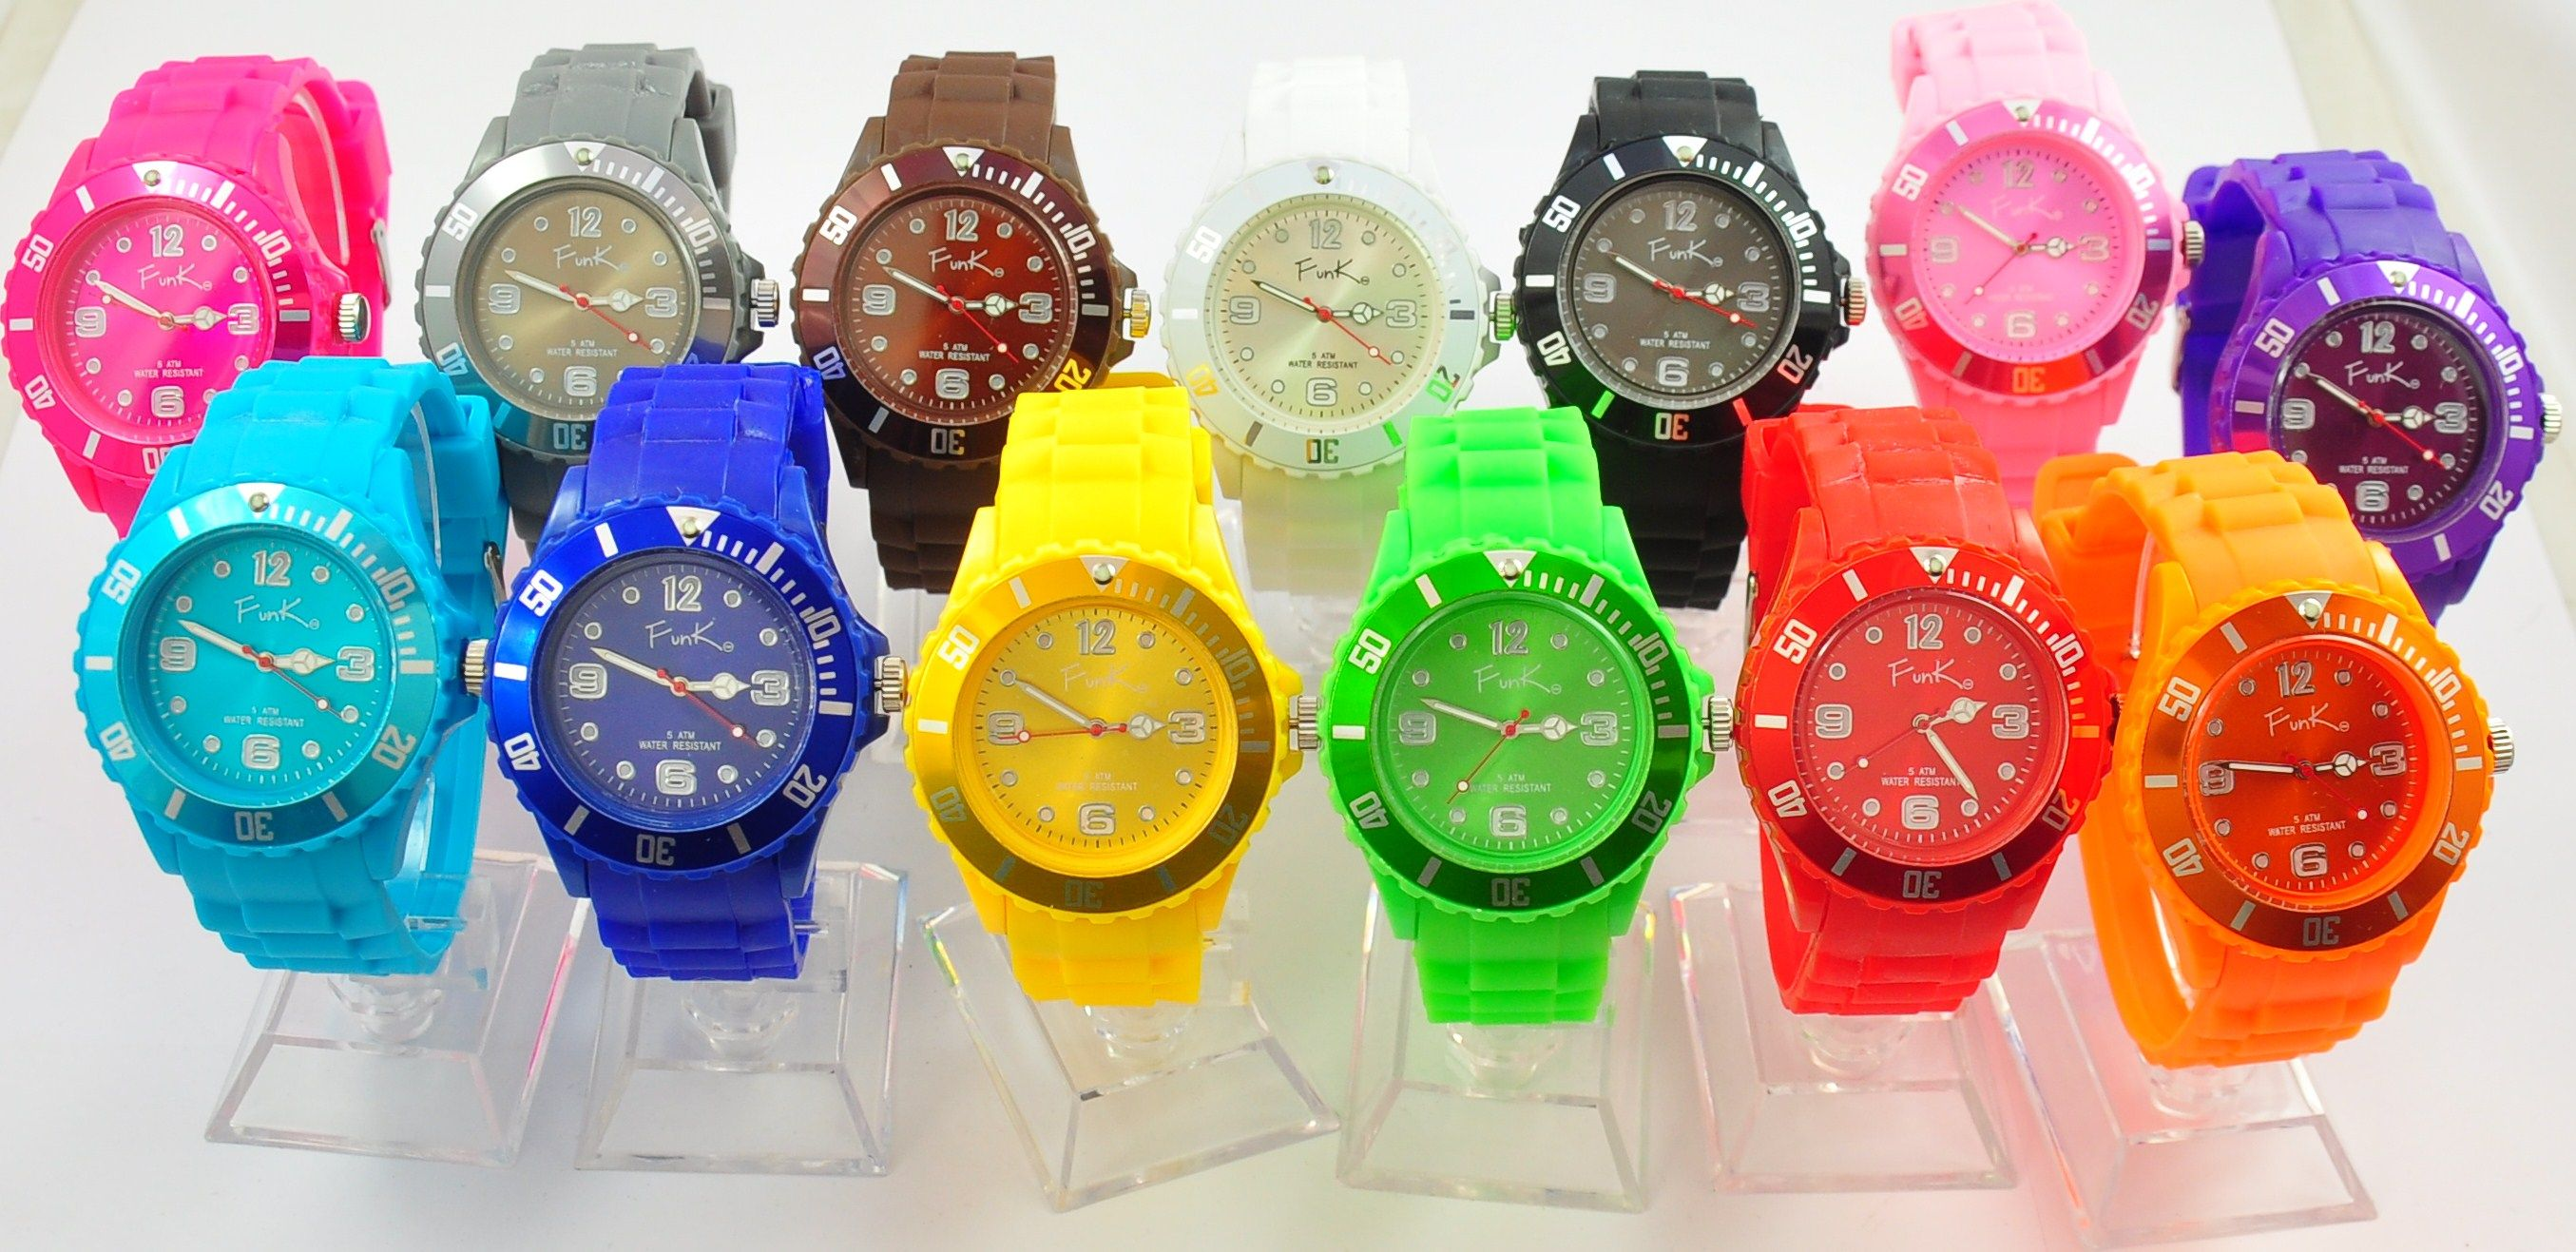 FunK co Watches in 13 vibrant colours